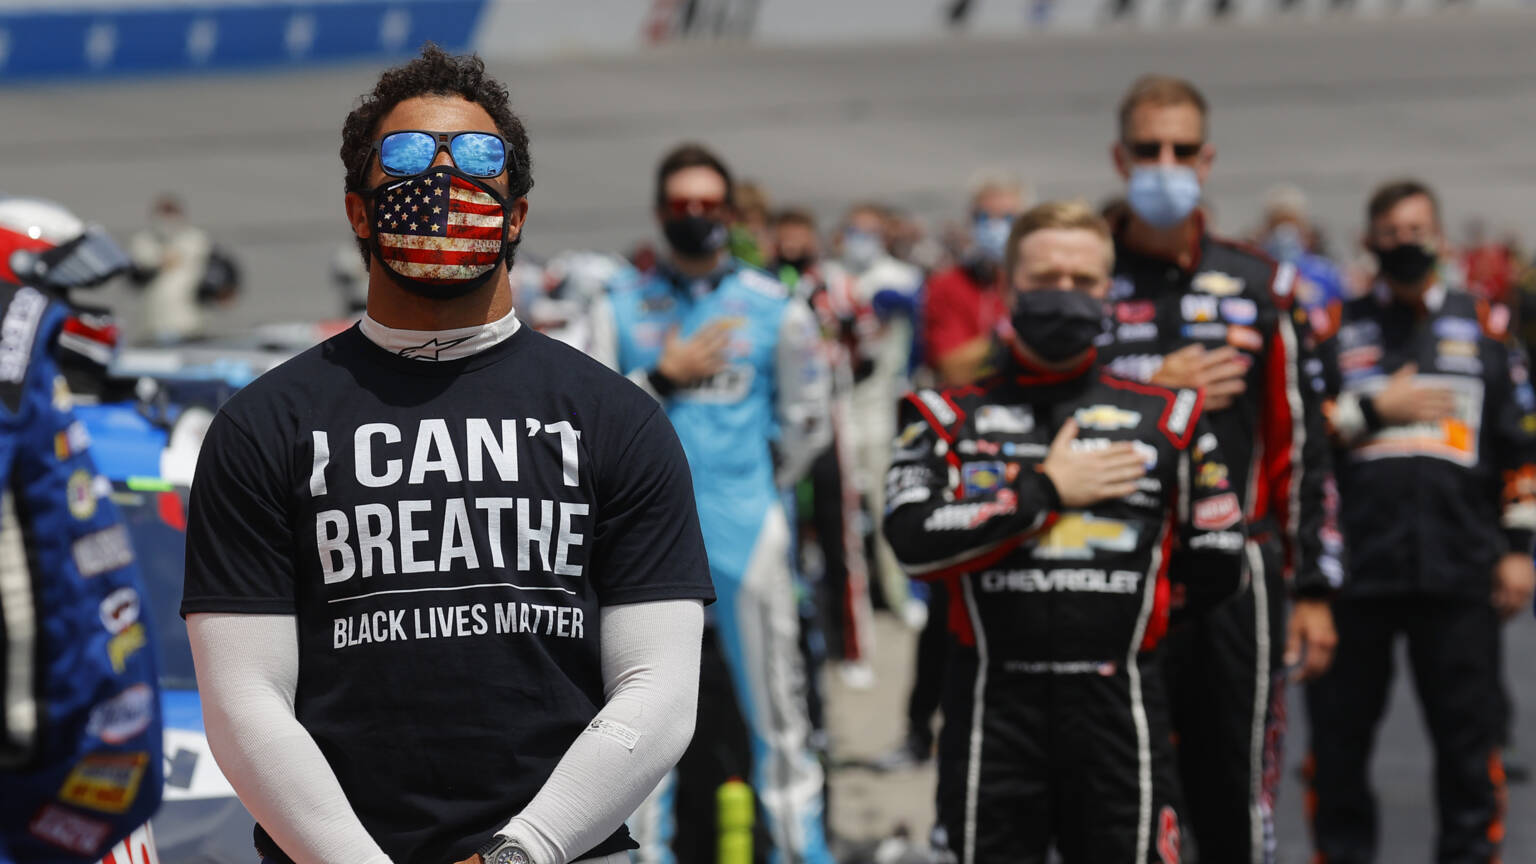 Bubba Wallace (left) wore a T-shirt referring to the death of George Floyd when singing the national anthem before a race on June 6. AFP photo